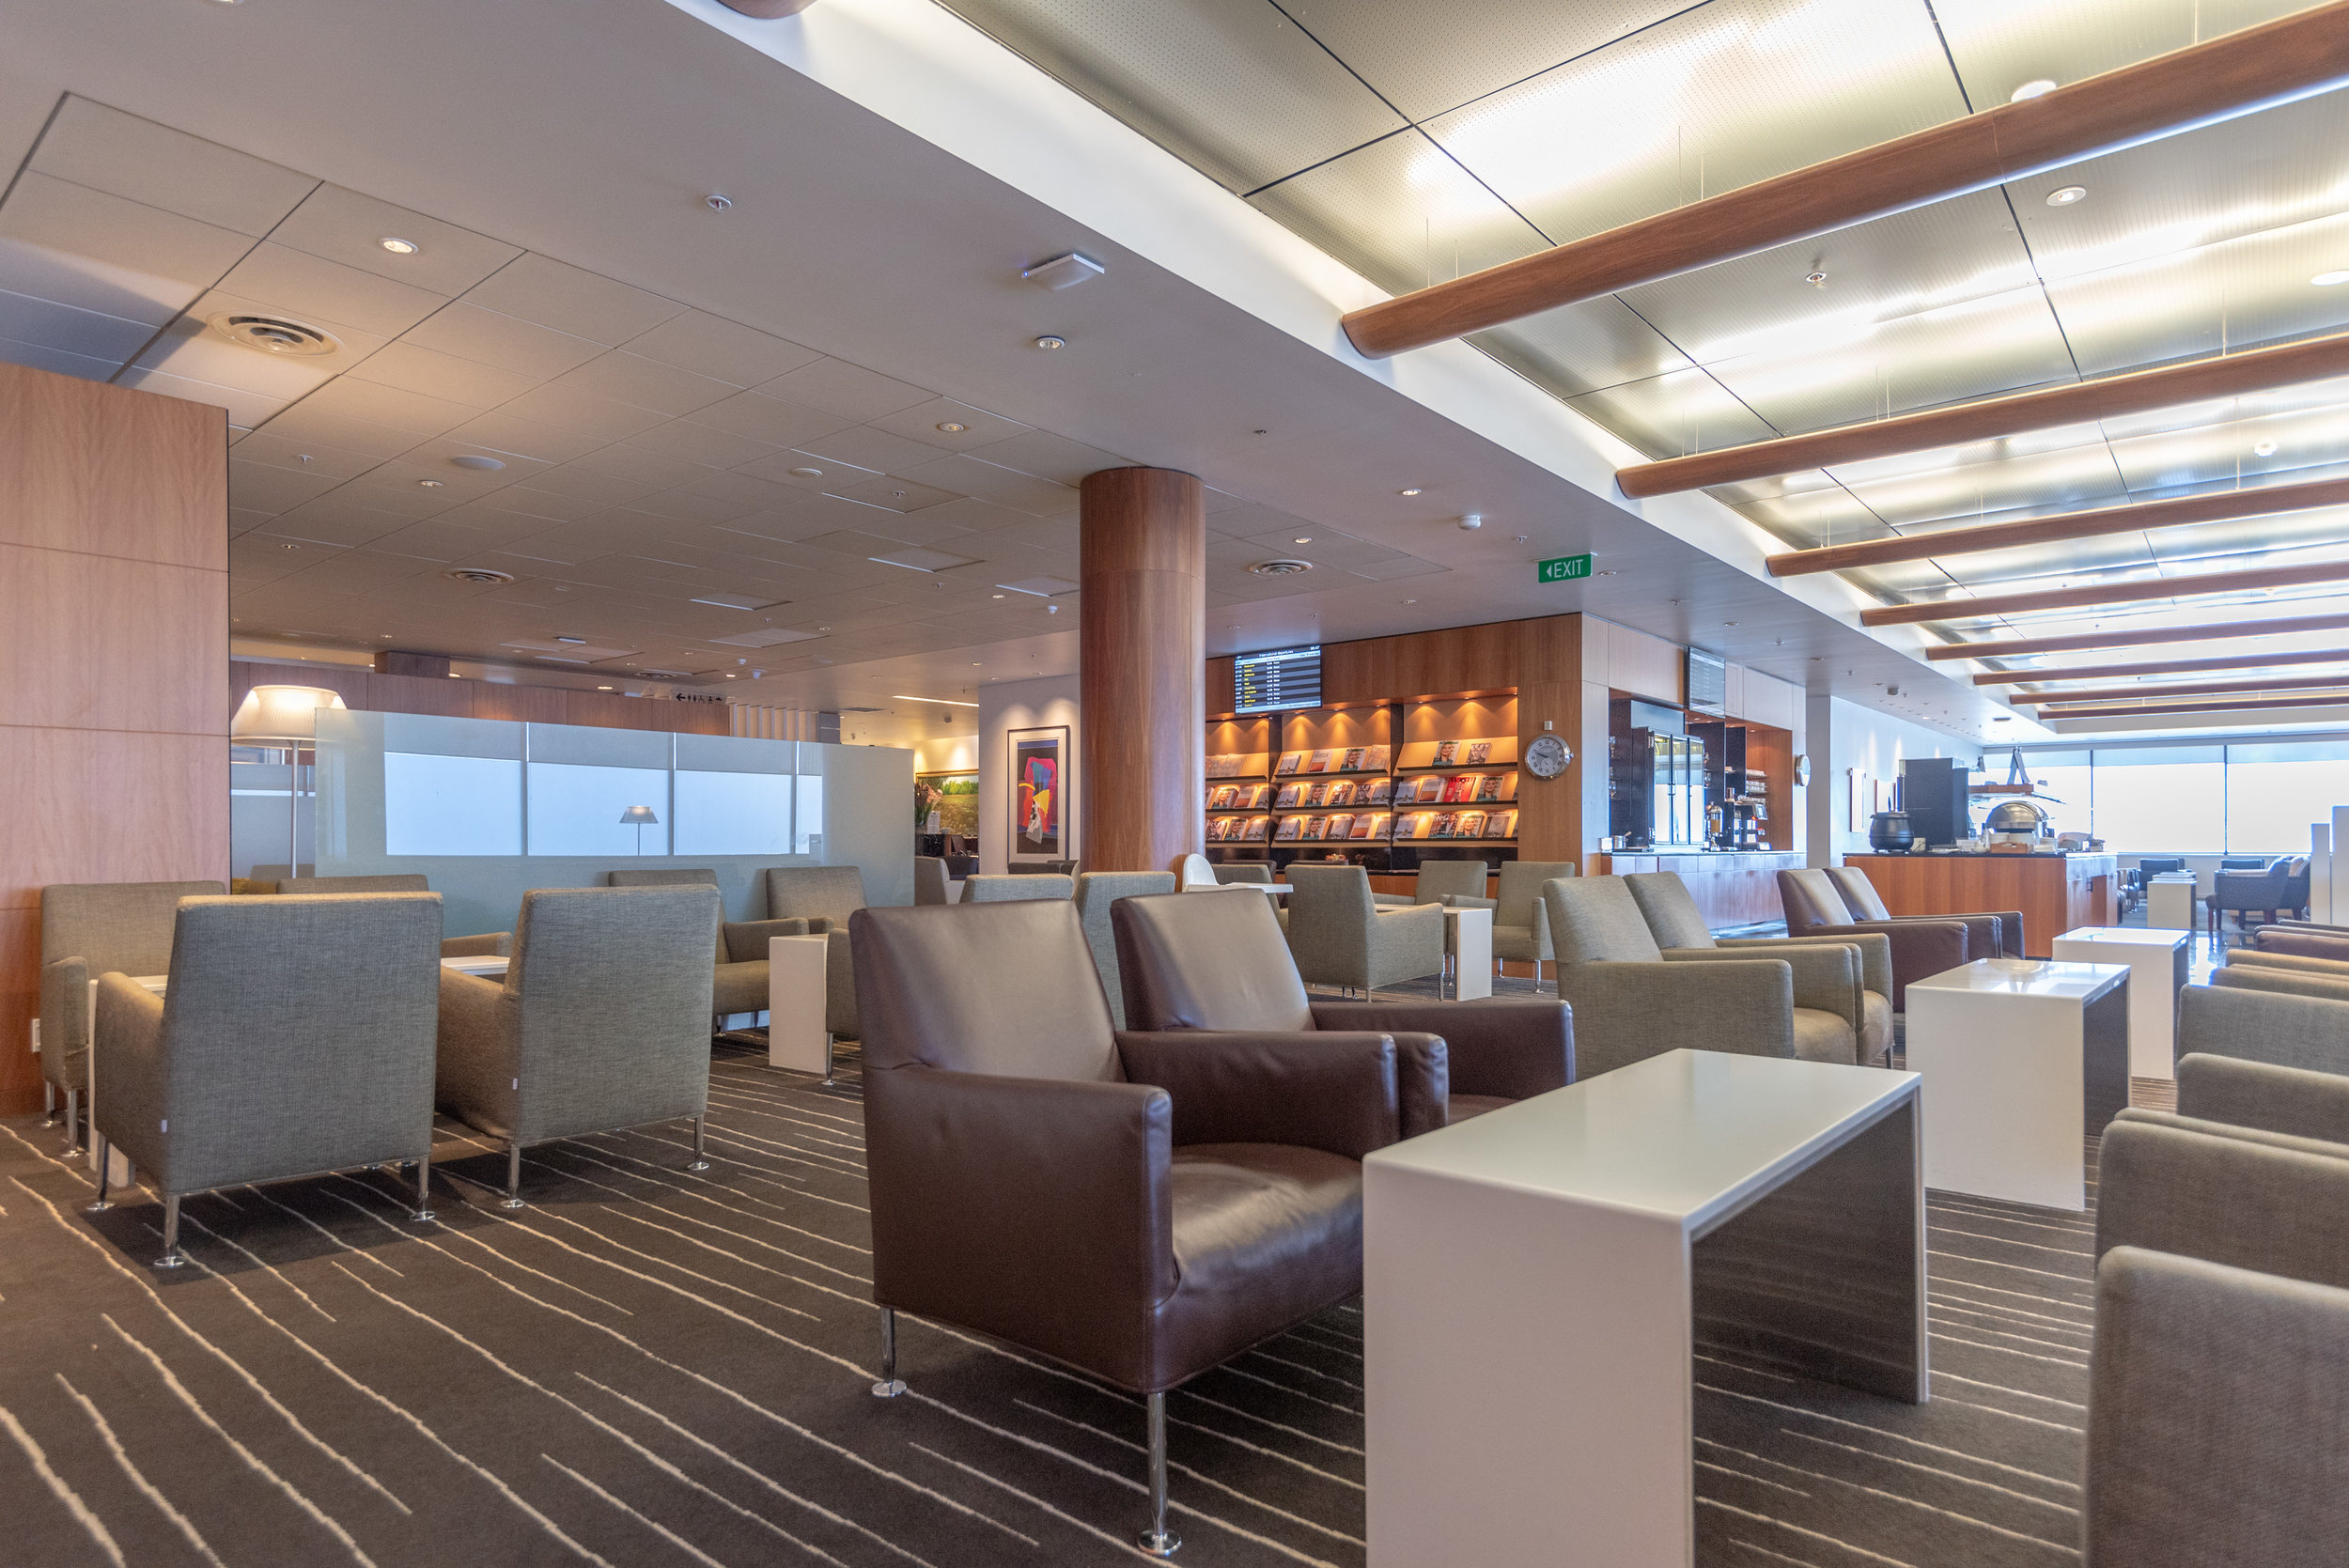 Qantas International Business Lounge - Auckland Airport (AKL)